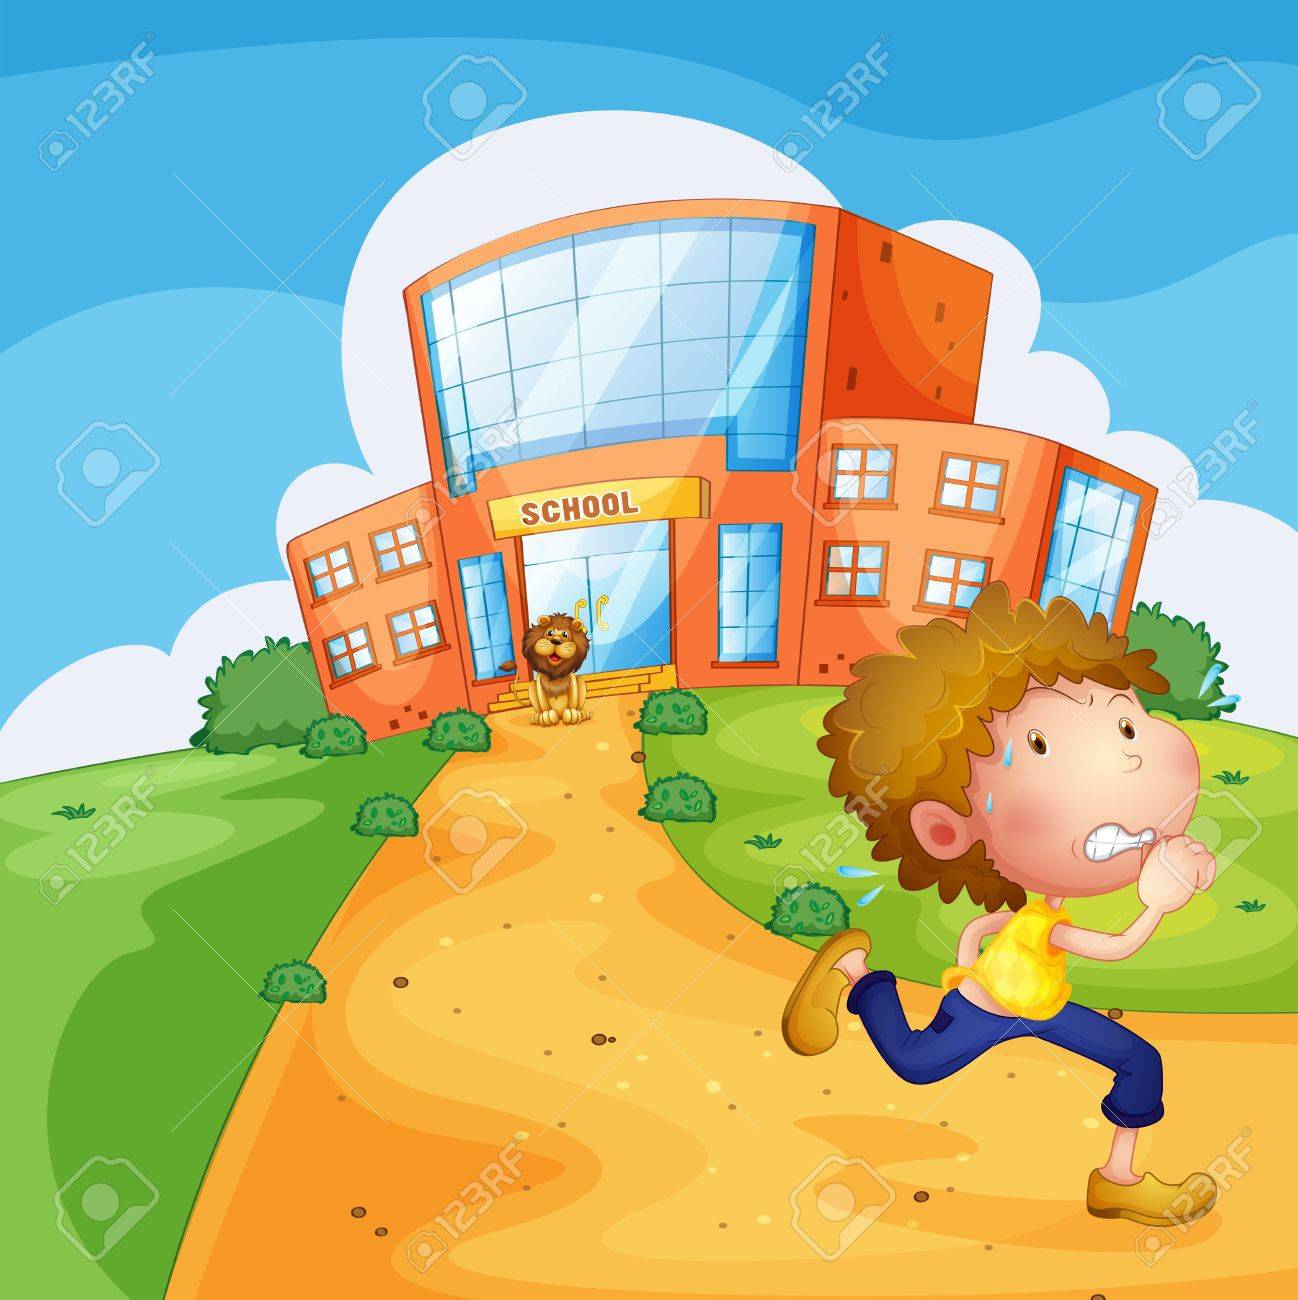 Illustration of a boy running and a lion near the school Stock Vector - 18323721